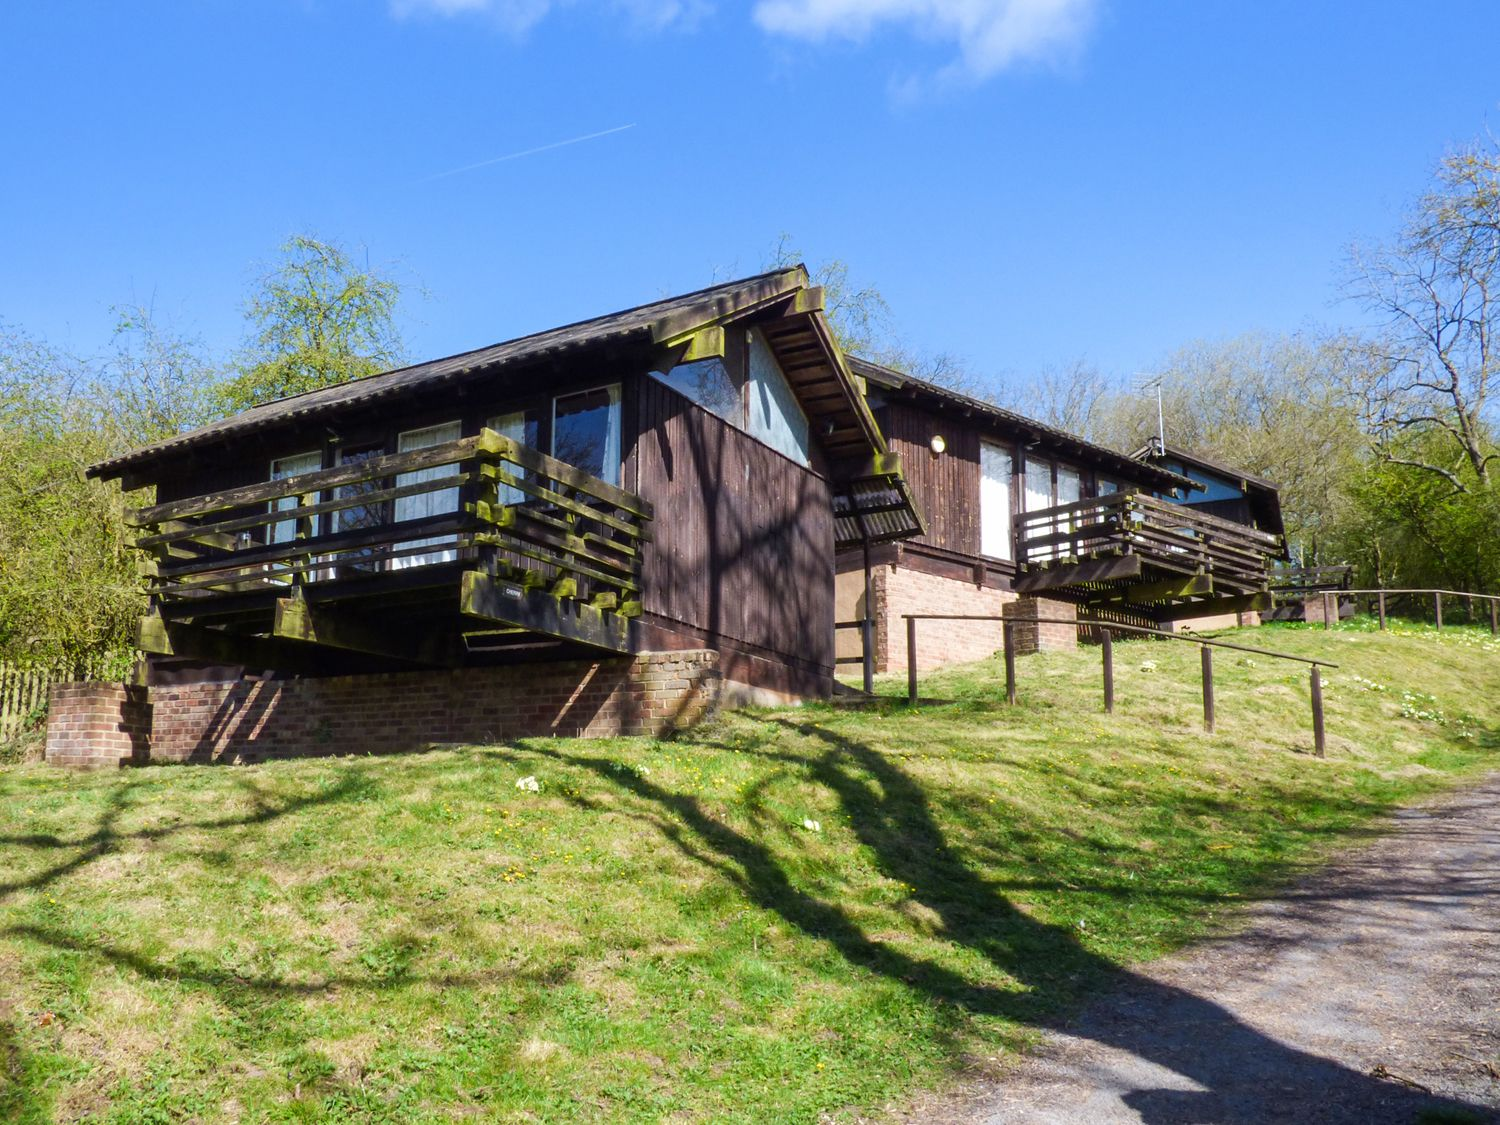 Photo of Cherry ( Ref 903687 ) Ampleforth holiday property near Helmsley - Chalet accommodation in Ryedale North Yorkshire